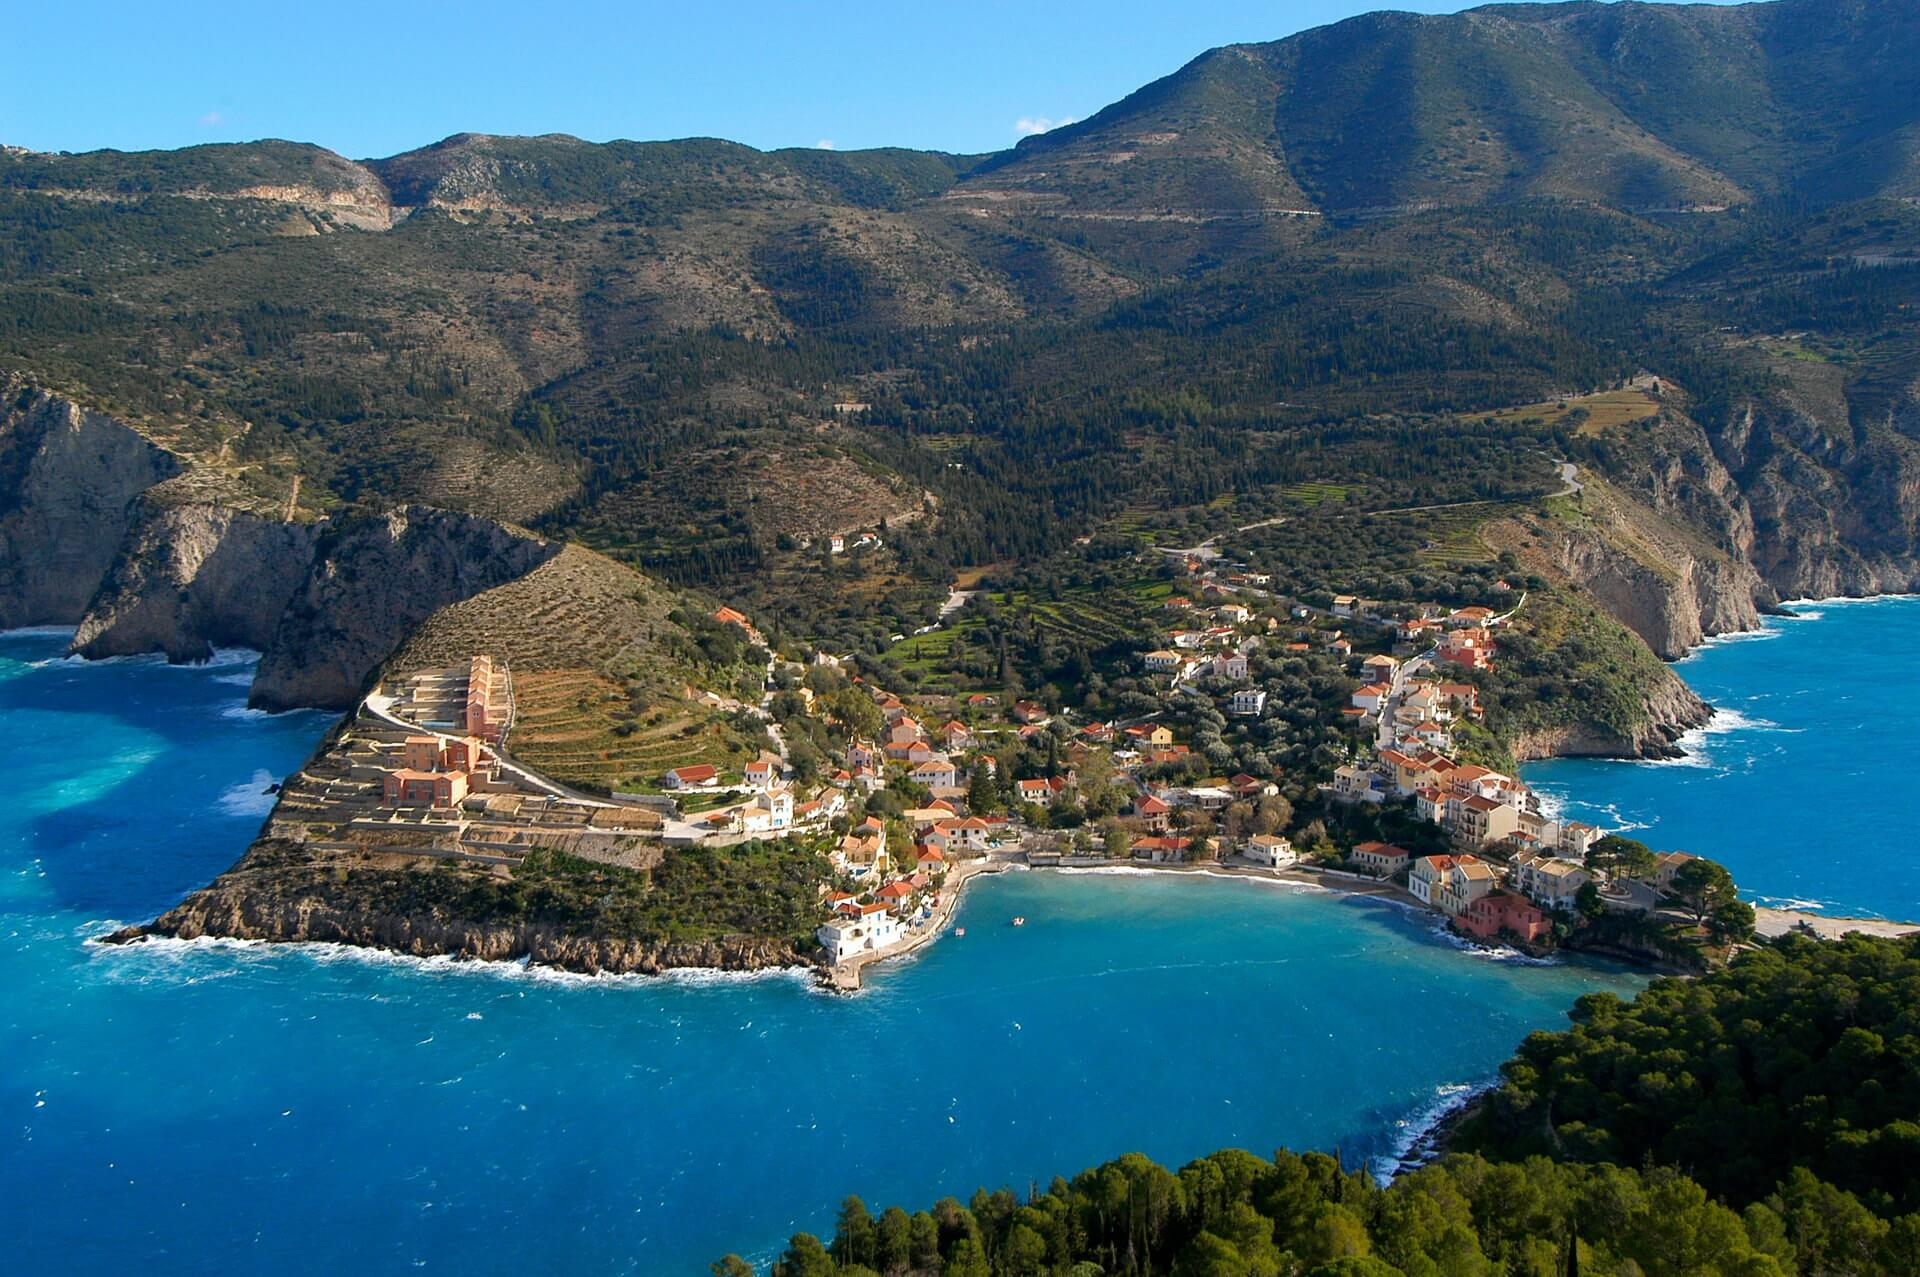 The village of Assos at Kefalonia, near the Myrtos beach